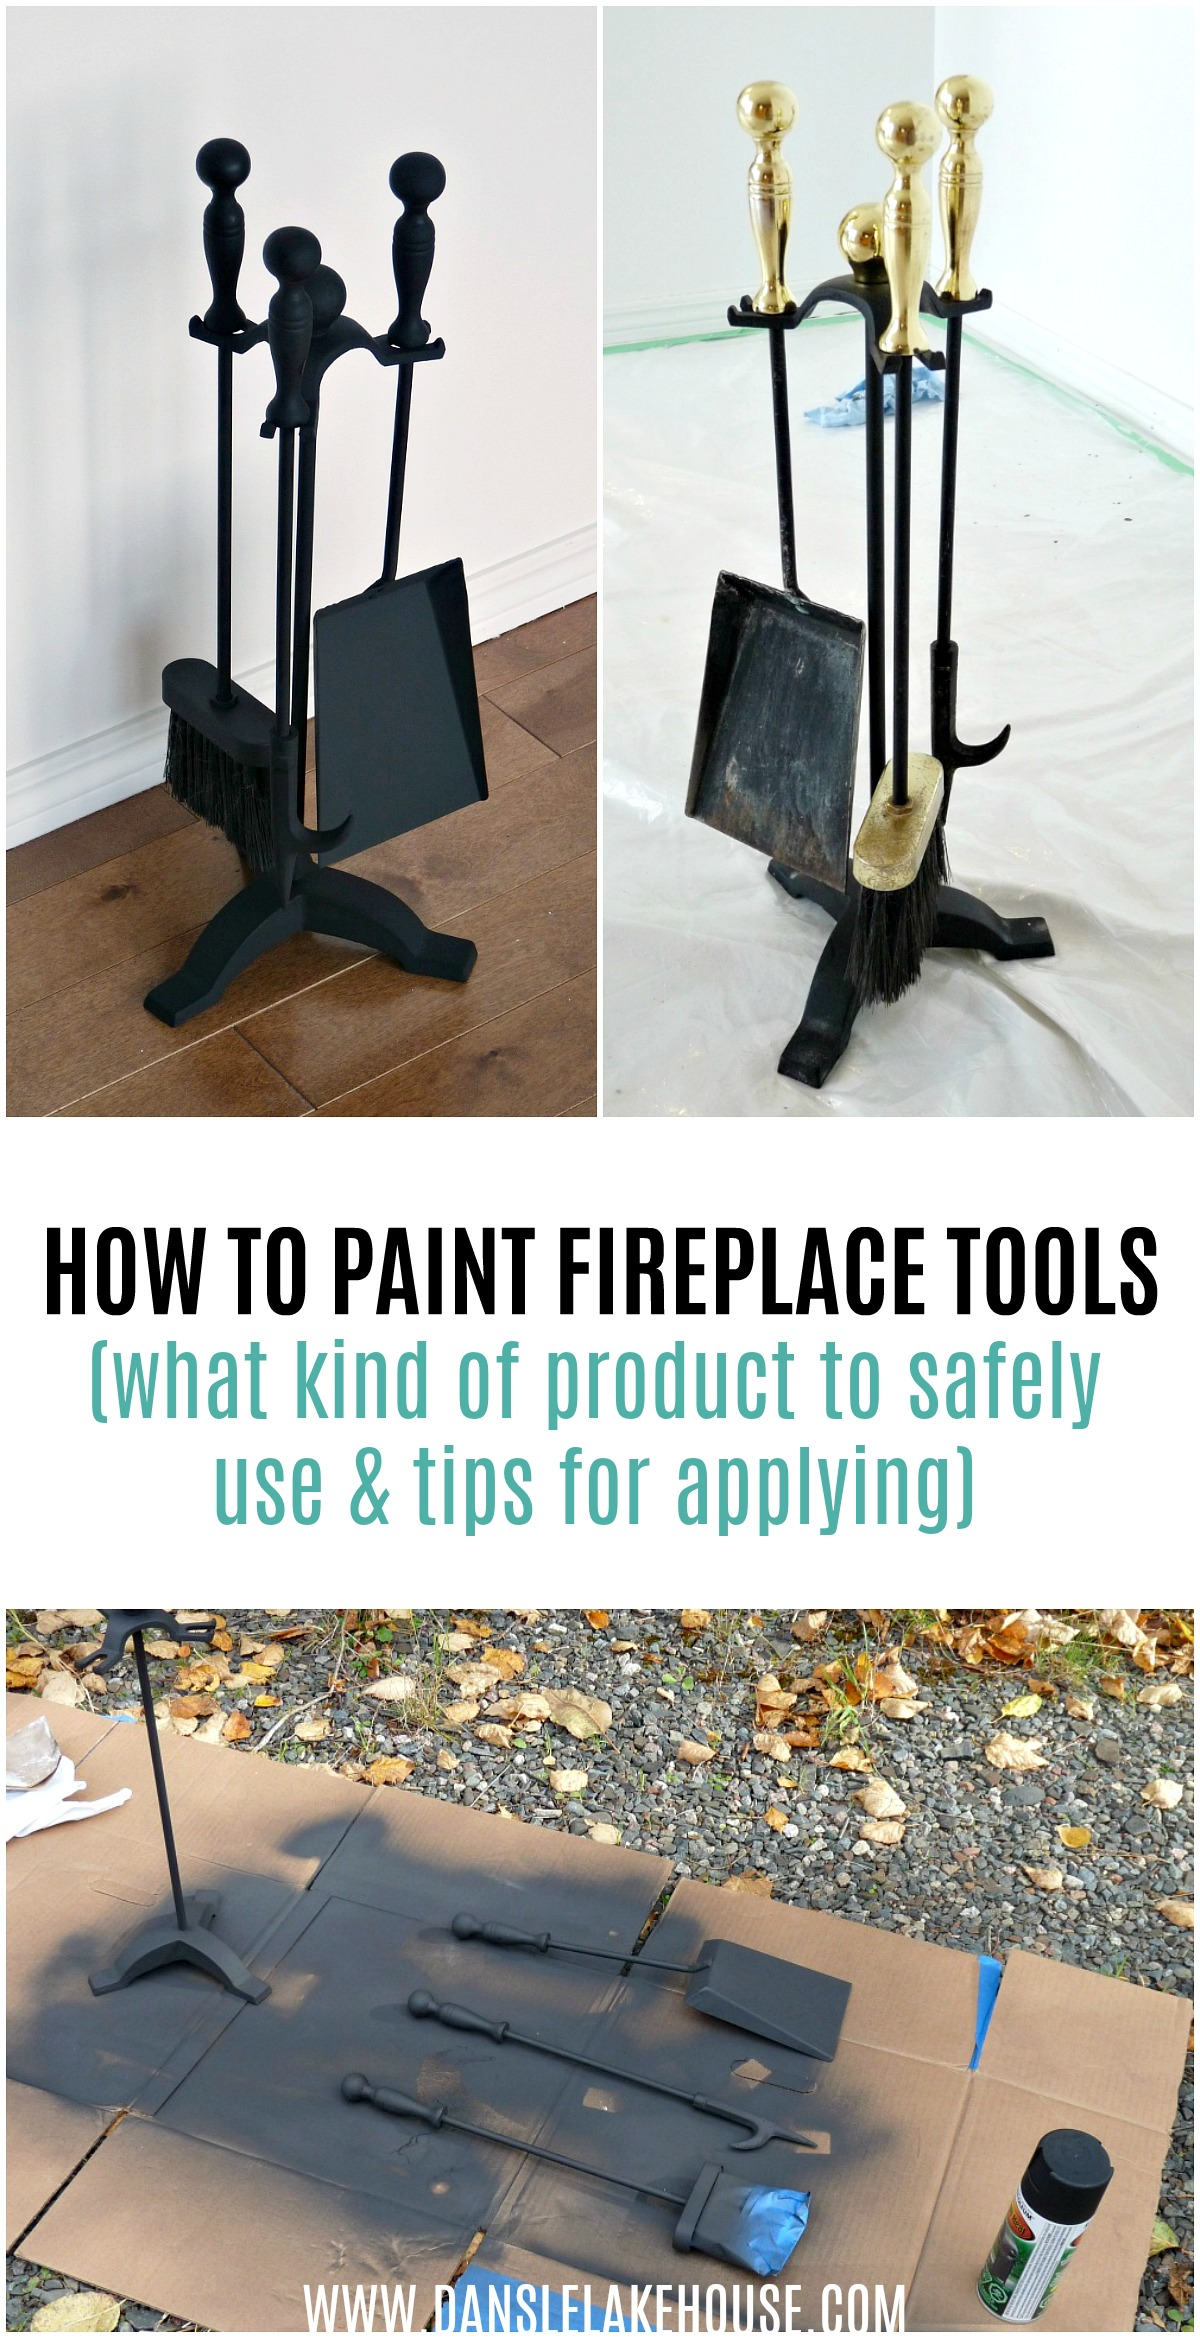 How to Paint Fireplace Tools | Give a Fire Poker Set a New Look with Paint